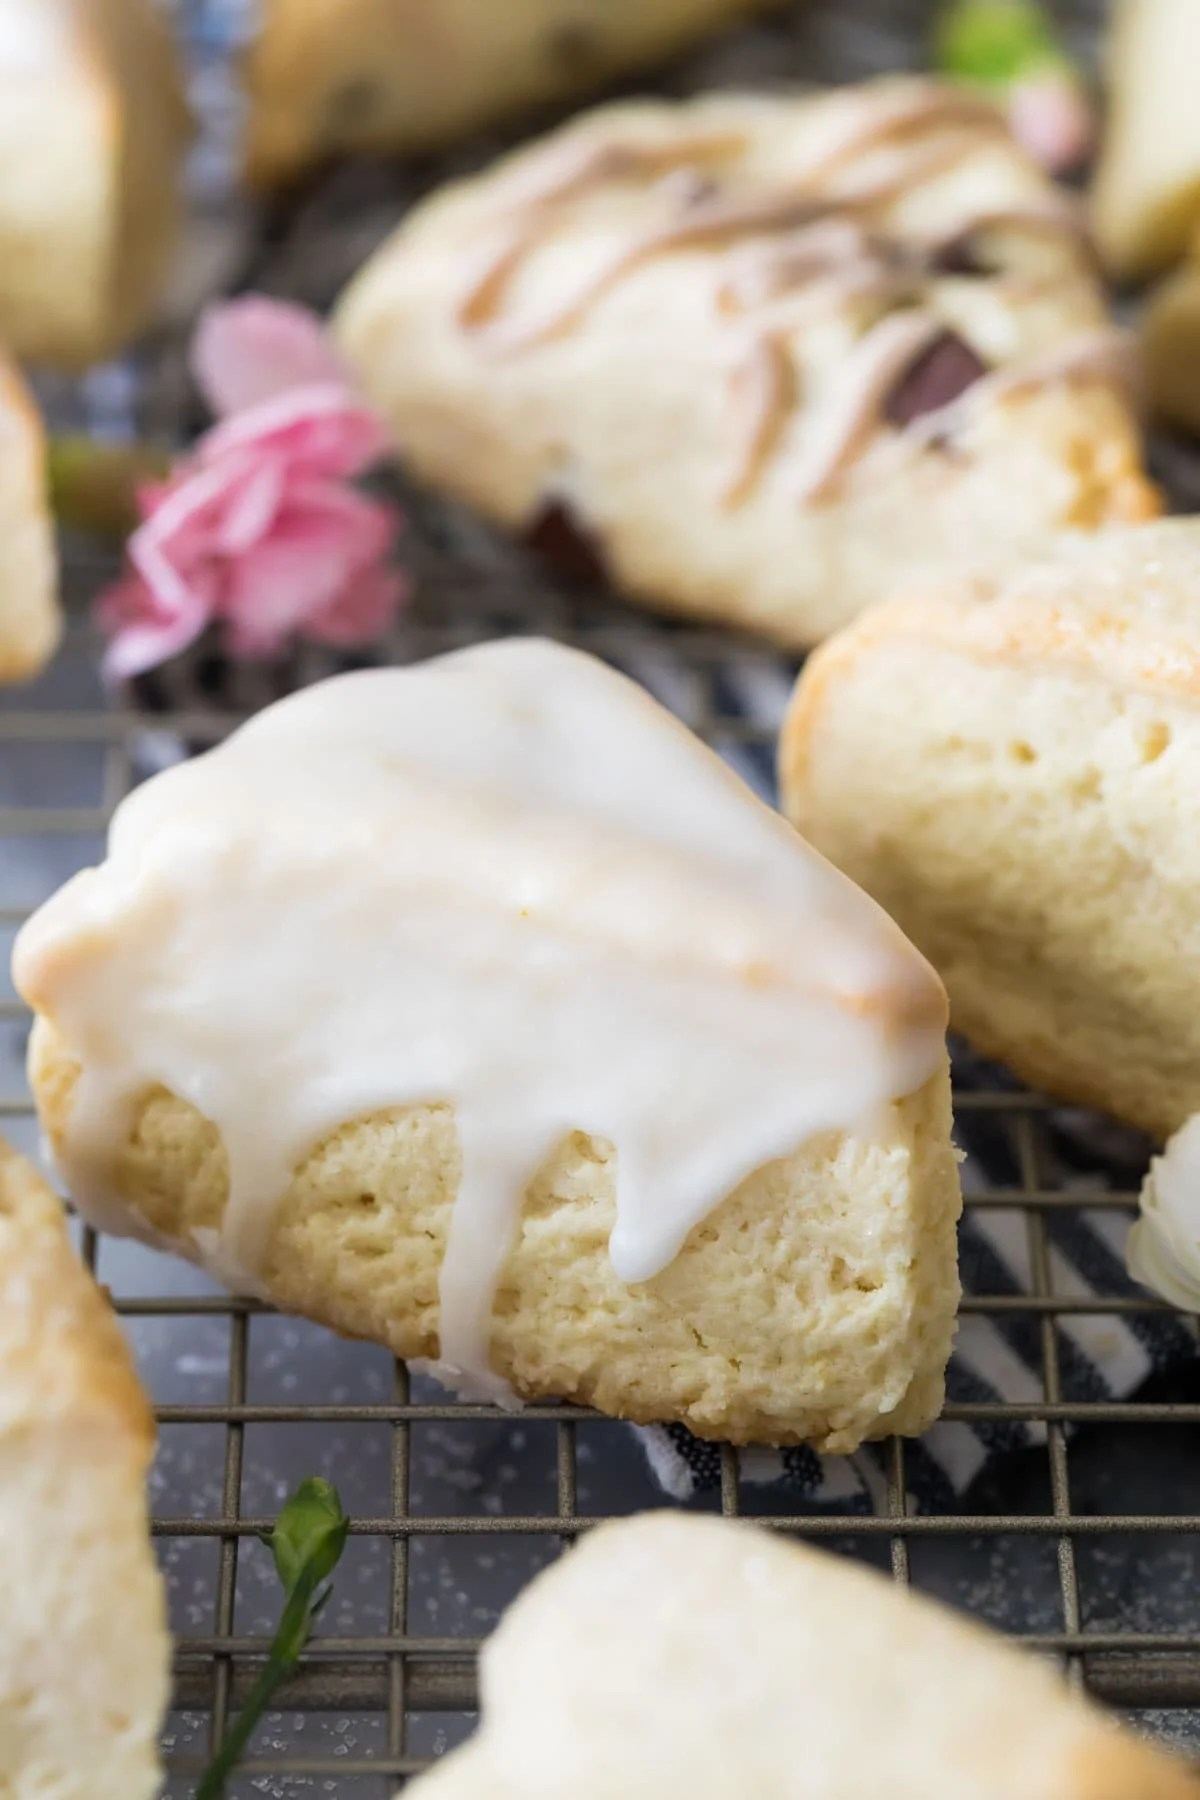 scone with glaze on cooling rack